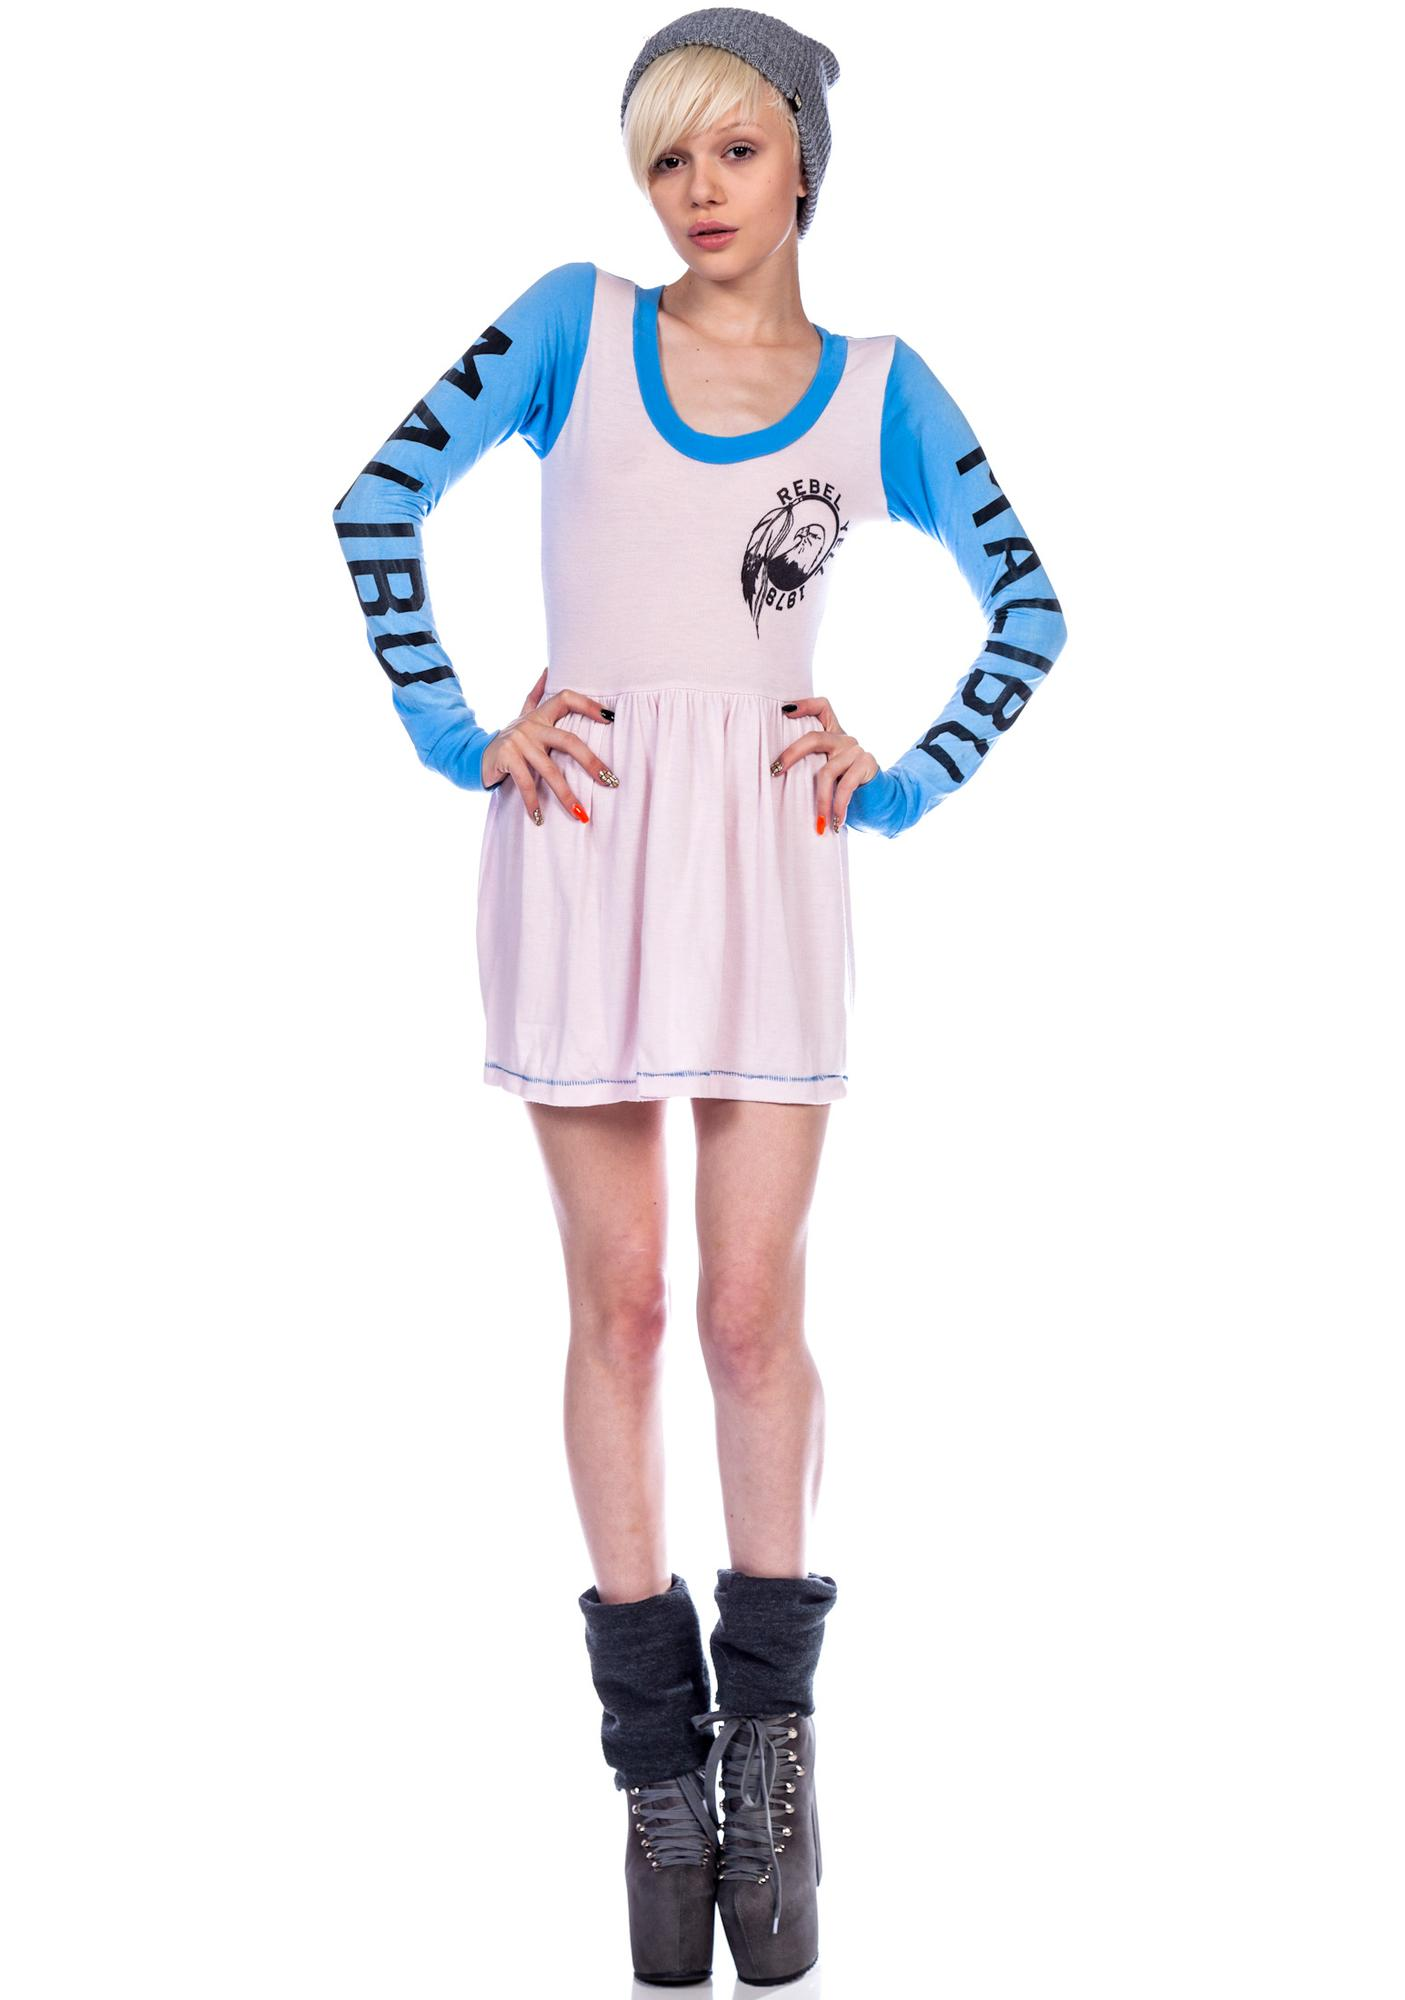 Rebel Yell Track and Field Mini Dress